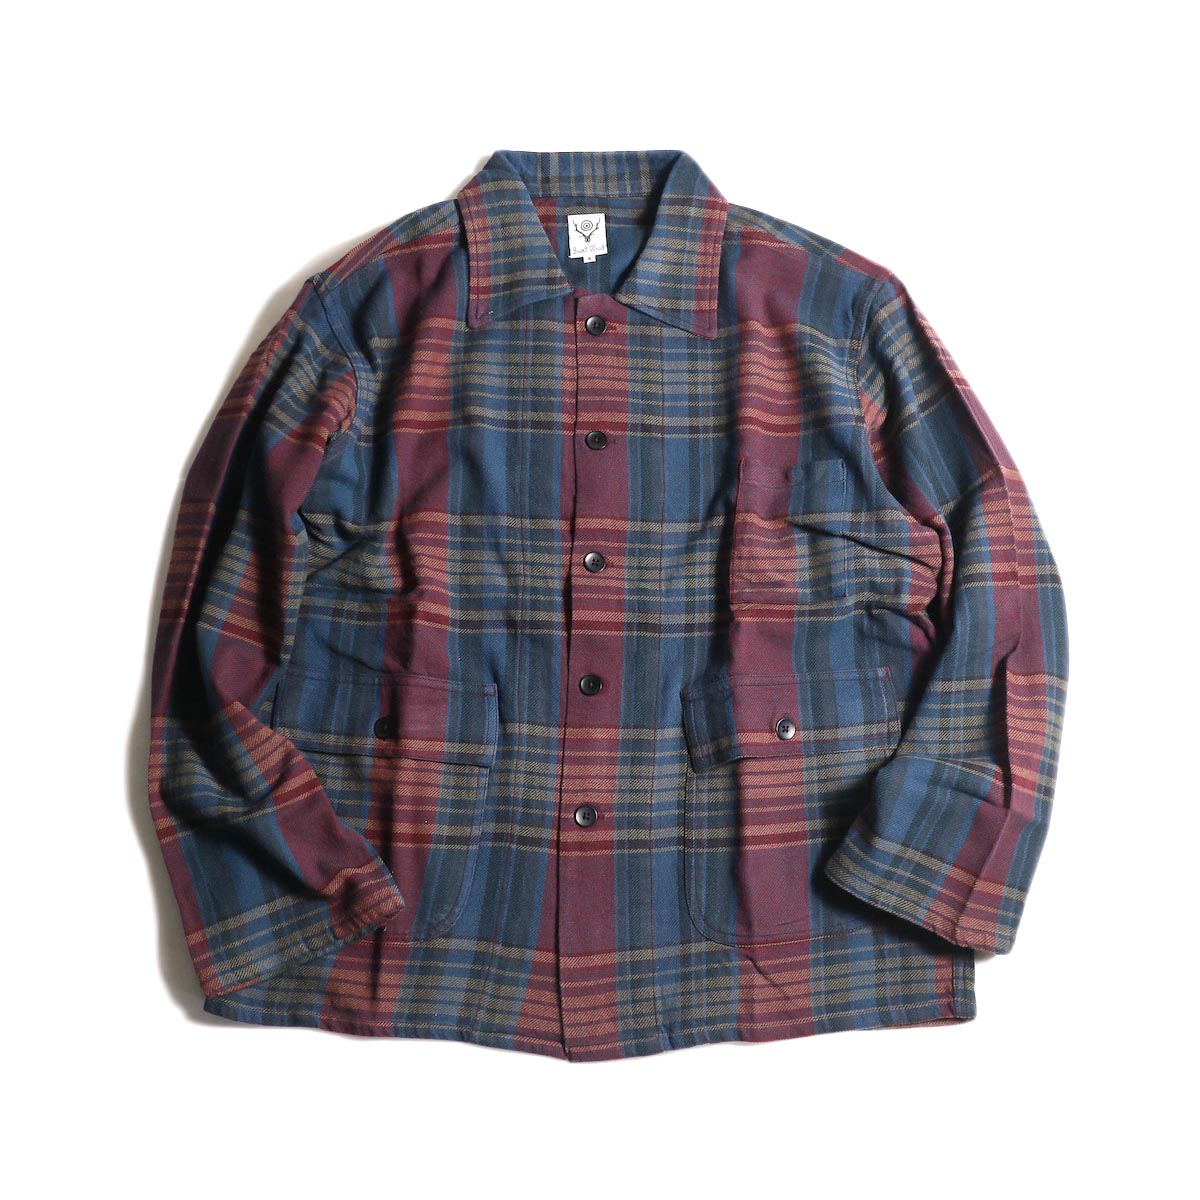 South2 West8 / Hunting Shirt -Plaid Twill (Navy/Red)